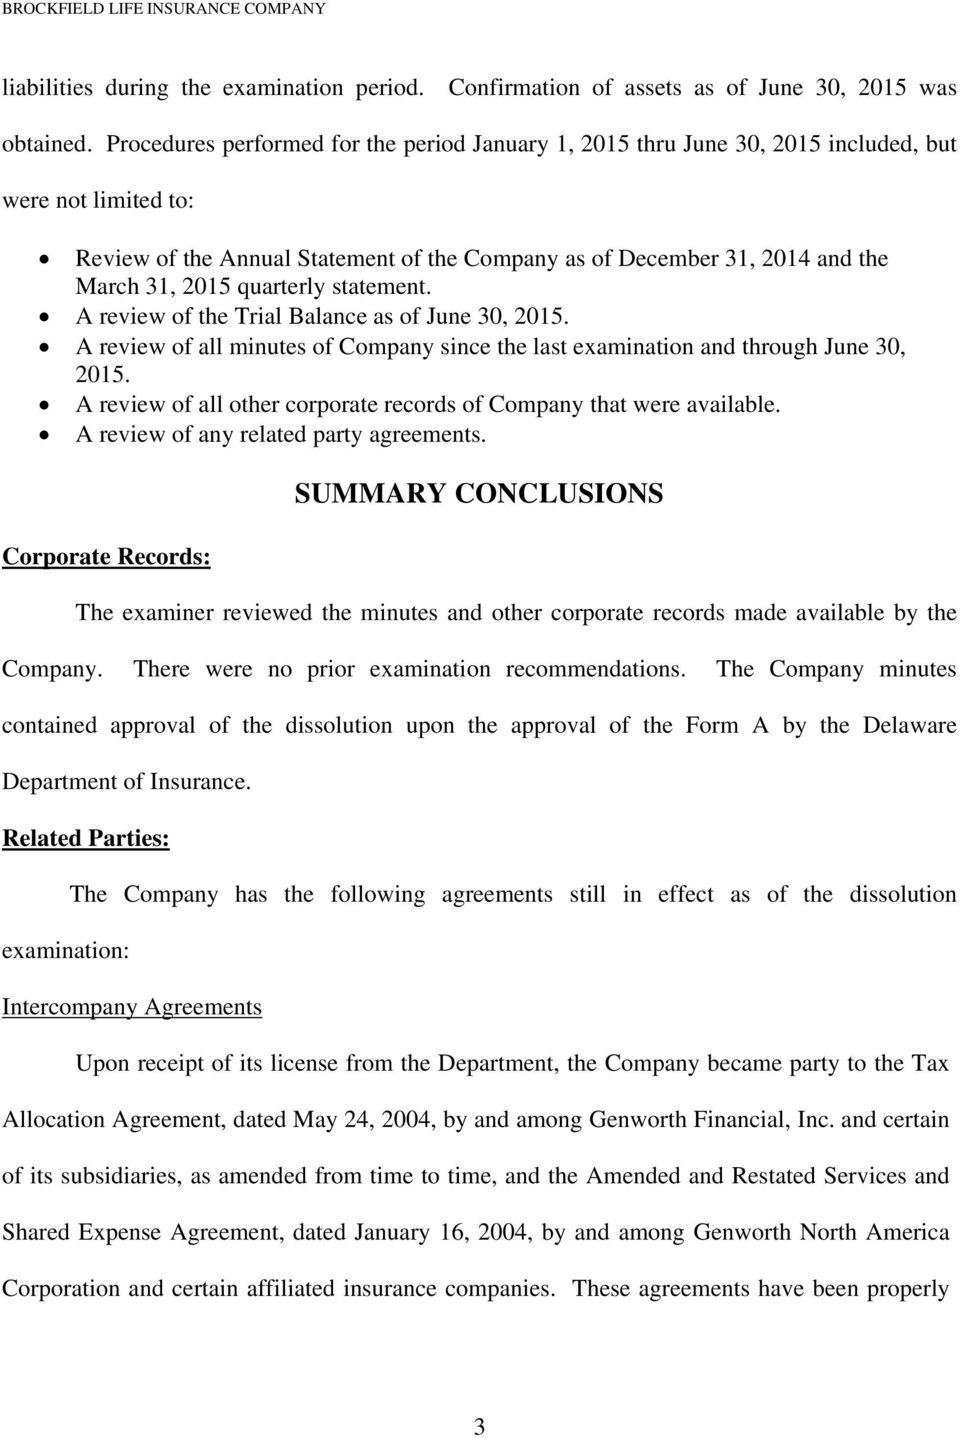 quarterly statement. A review of the Trial Balance as of June 30, 2015. A review of all minutes of Company since the last examination and through June 30, 2015.